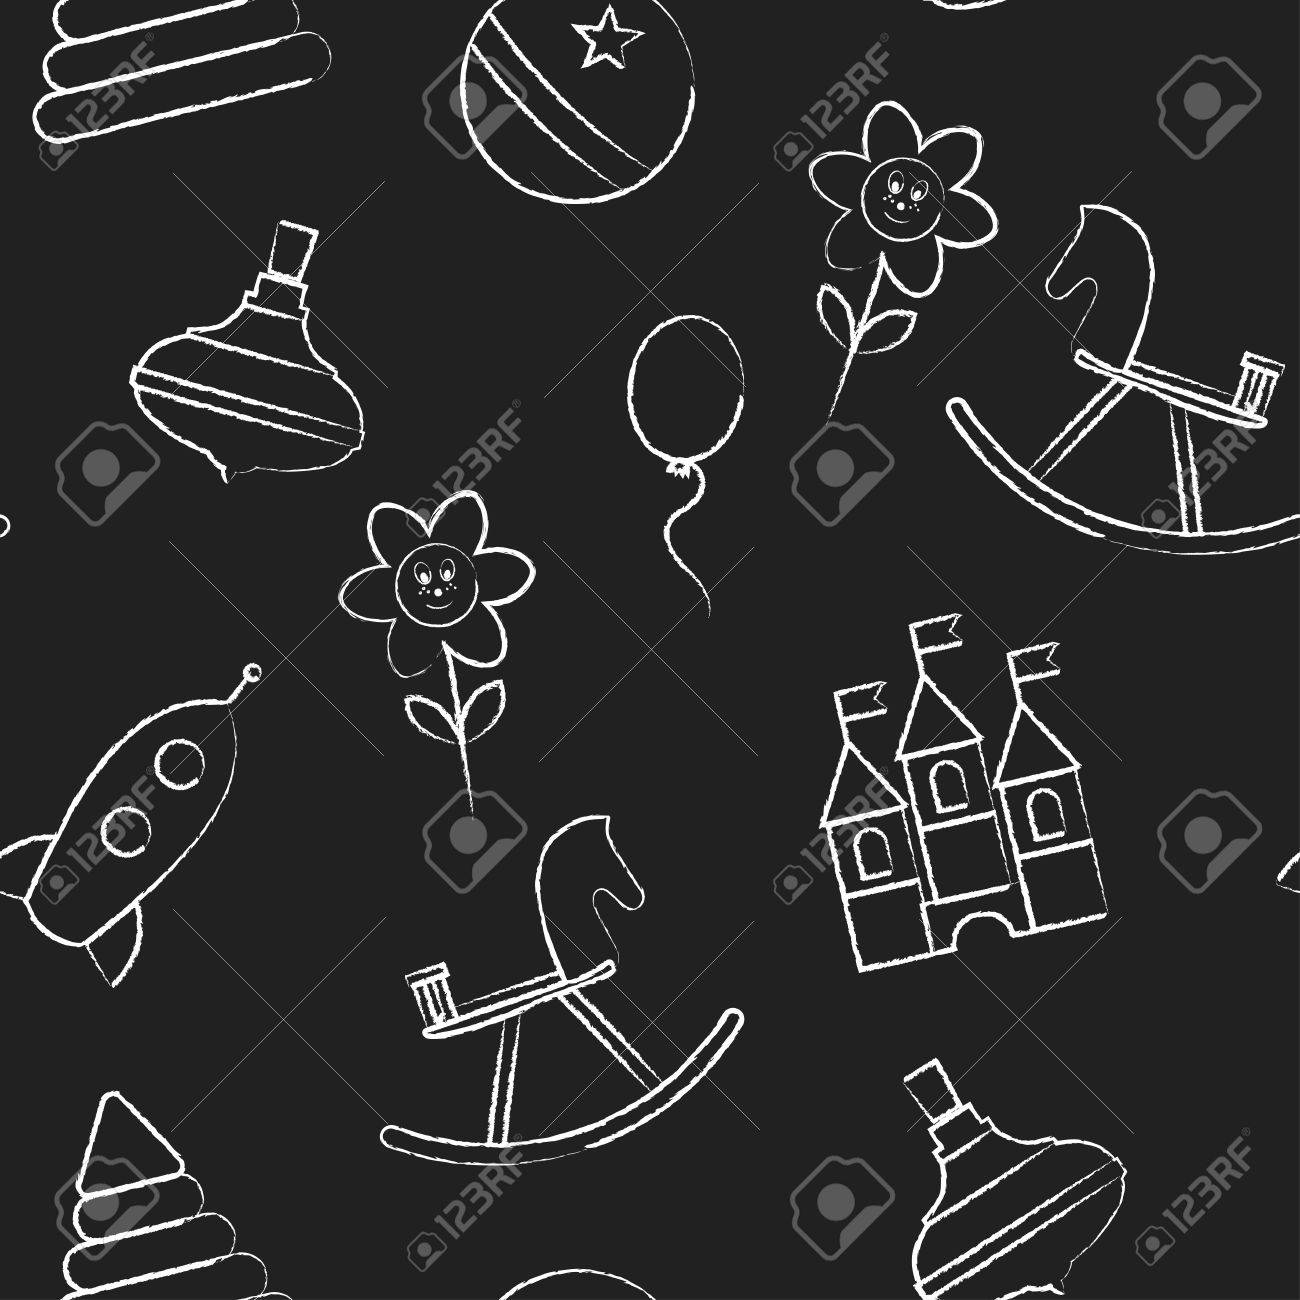 Seamless Pattern With White Childrens Chalk Drawings Jn Black 1300x1300